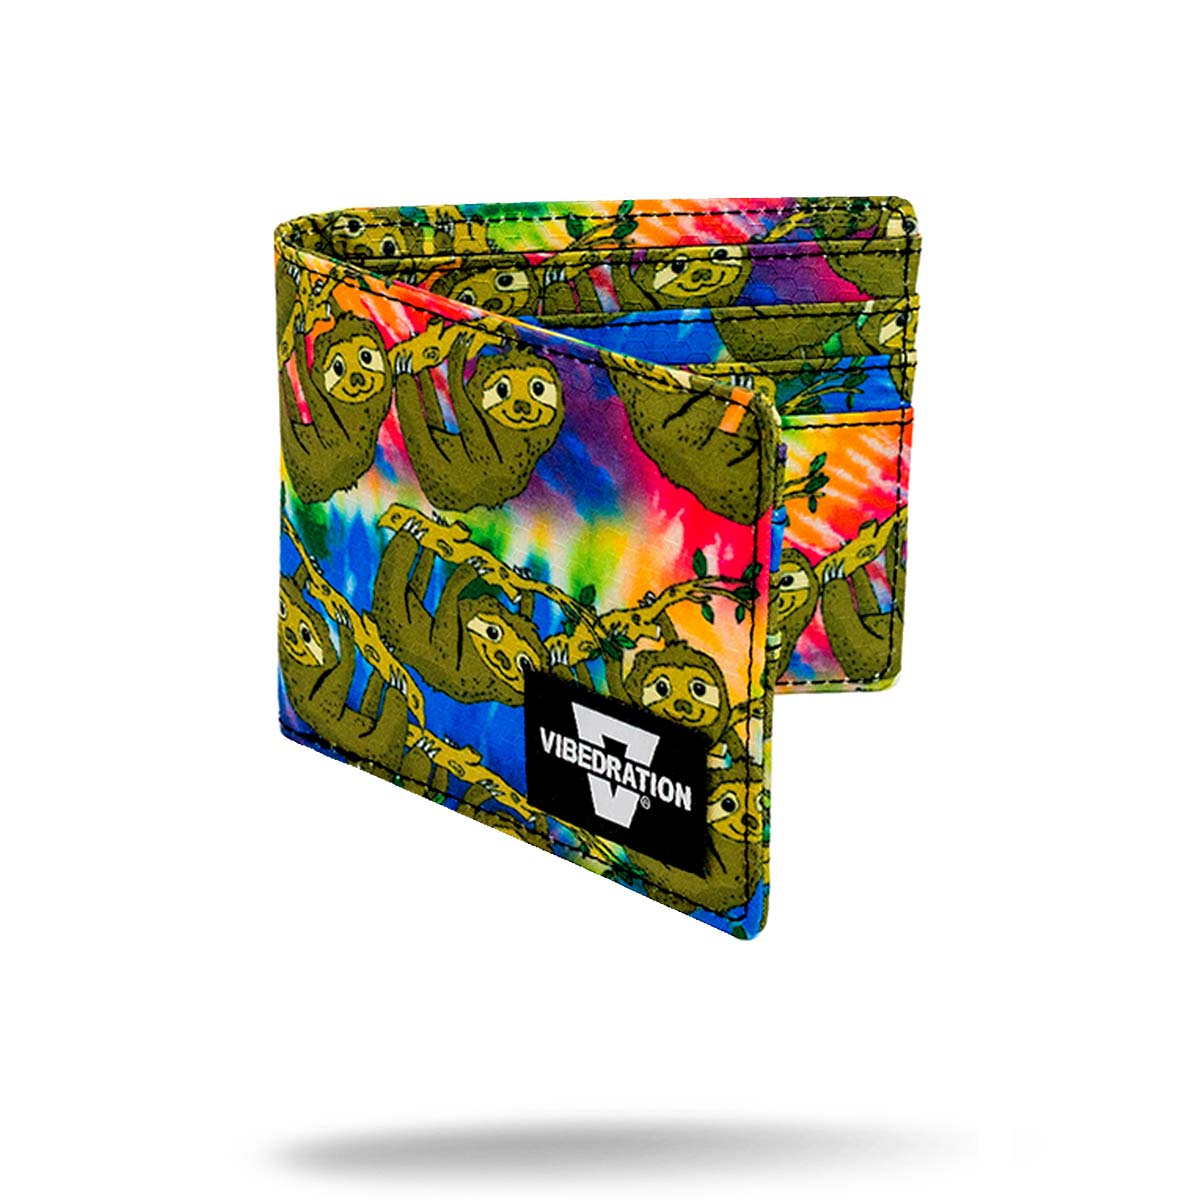 Tie Dye Sloth Printed Folding Wallet